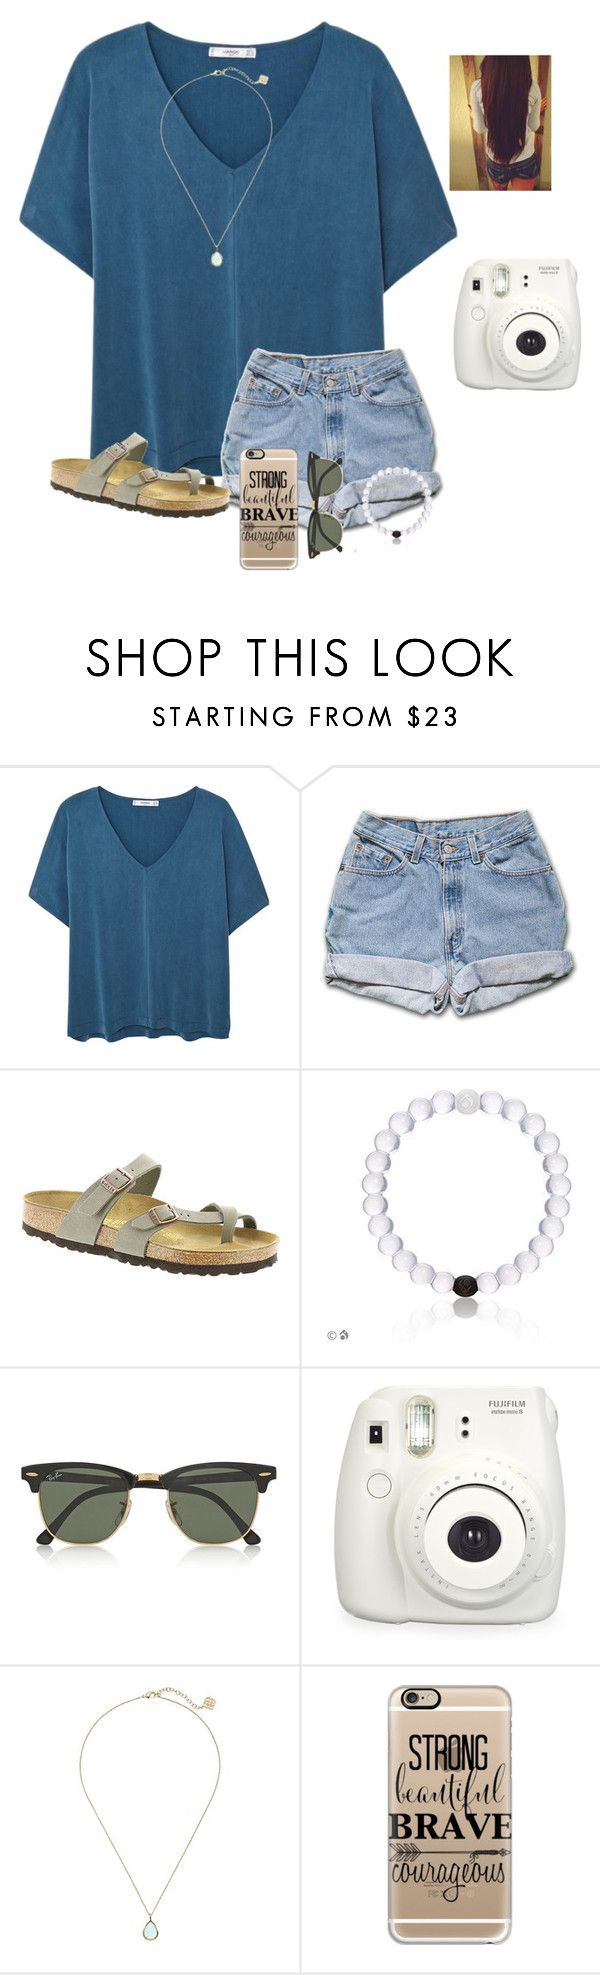 """Who else has listened to mercy by Shawn Mendes?"" by raquate1232 ❤ liked on Polyvore featuring MANGO, Birkenstock, Ray-Ban, Fuji, Kendra Scott and Casetify"